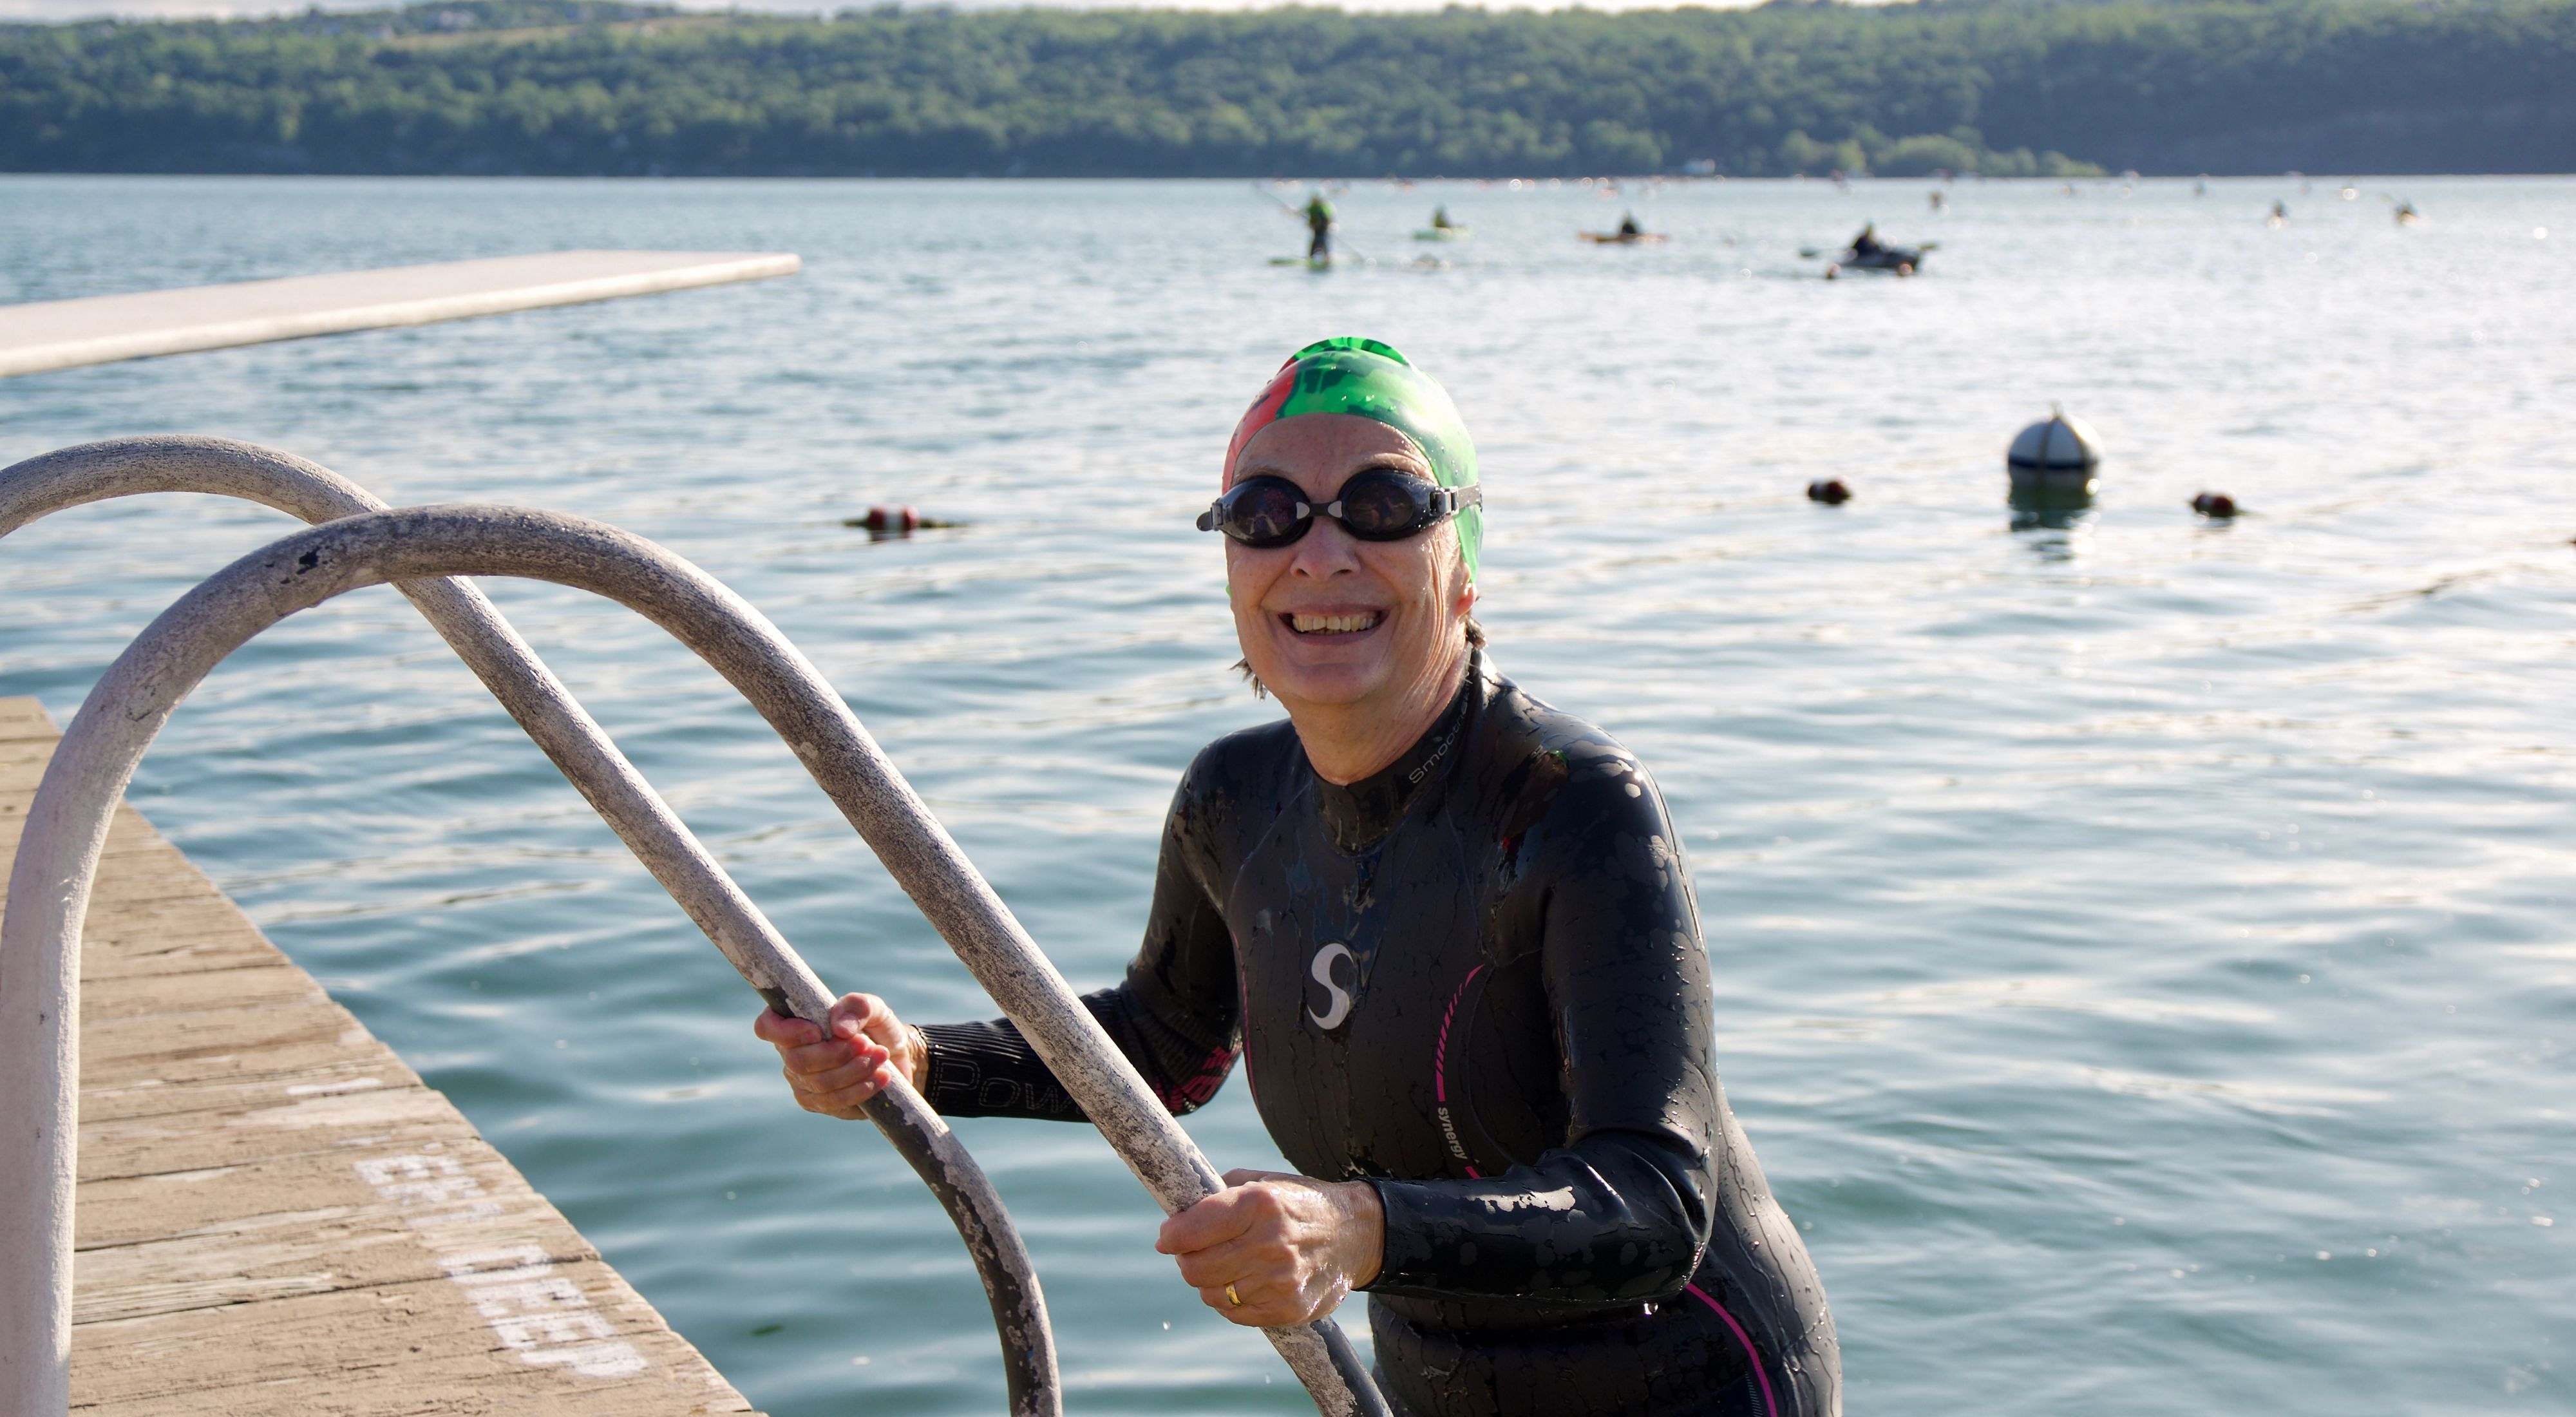 A swimmer in a long sleeved black wetsuit and green swim cap with goggles on emerging from a lake on a ladder and dock at the lefthand side of the frame.